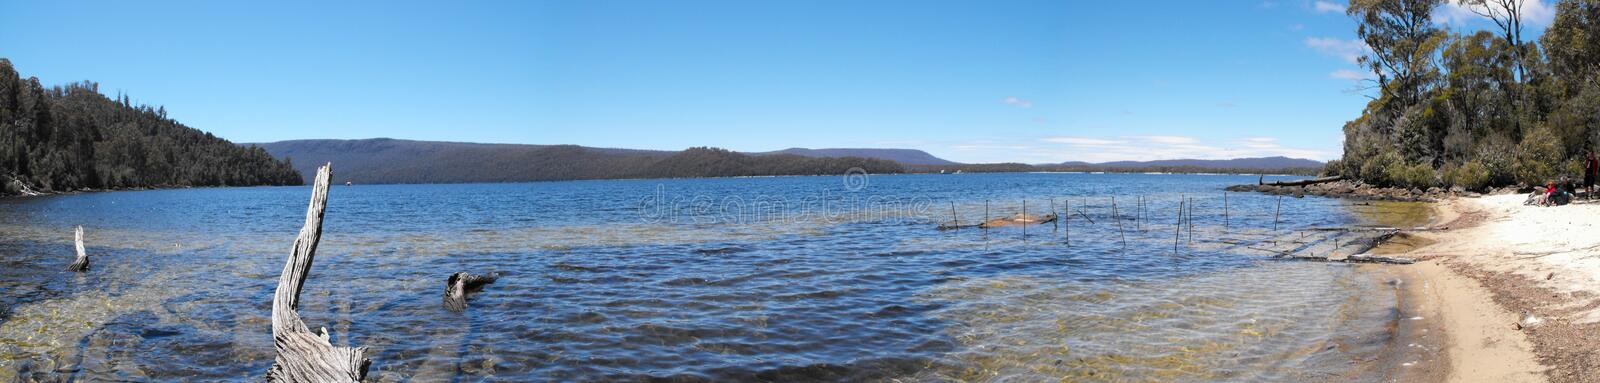 Platypus Bay Royalty Free Stock Images